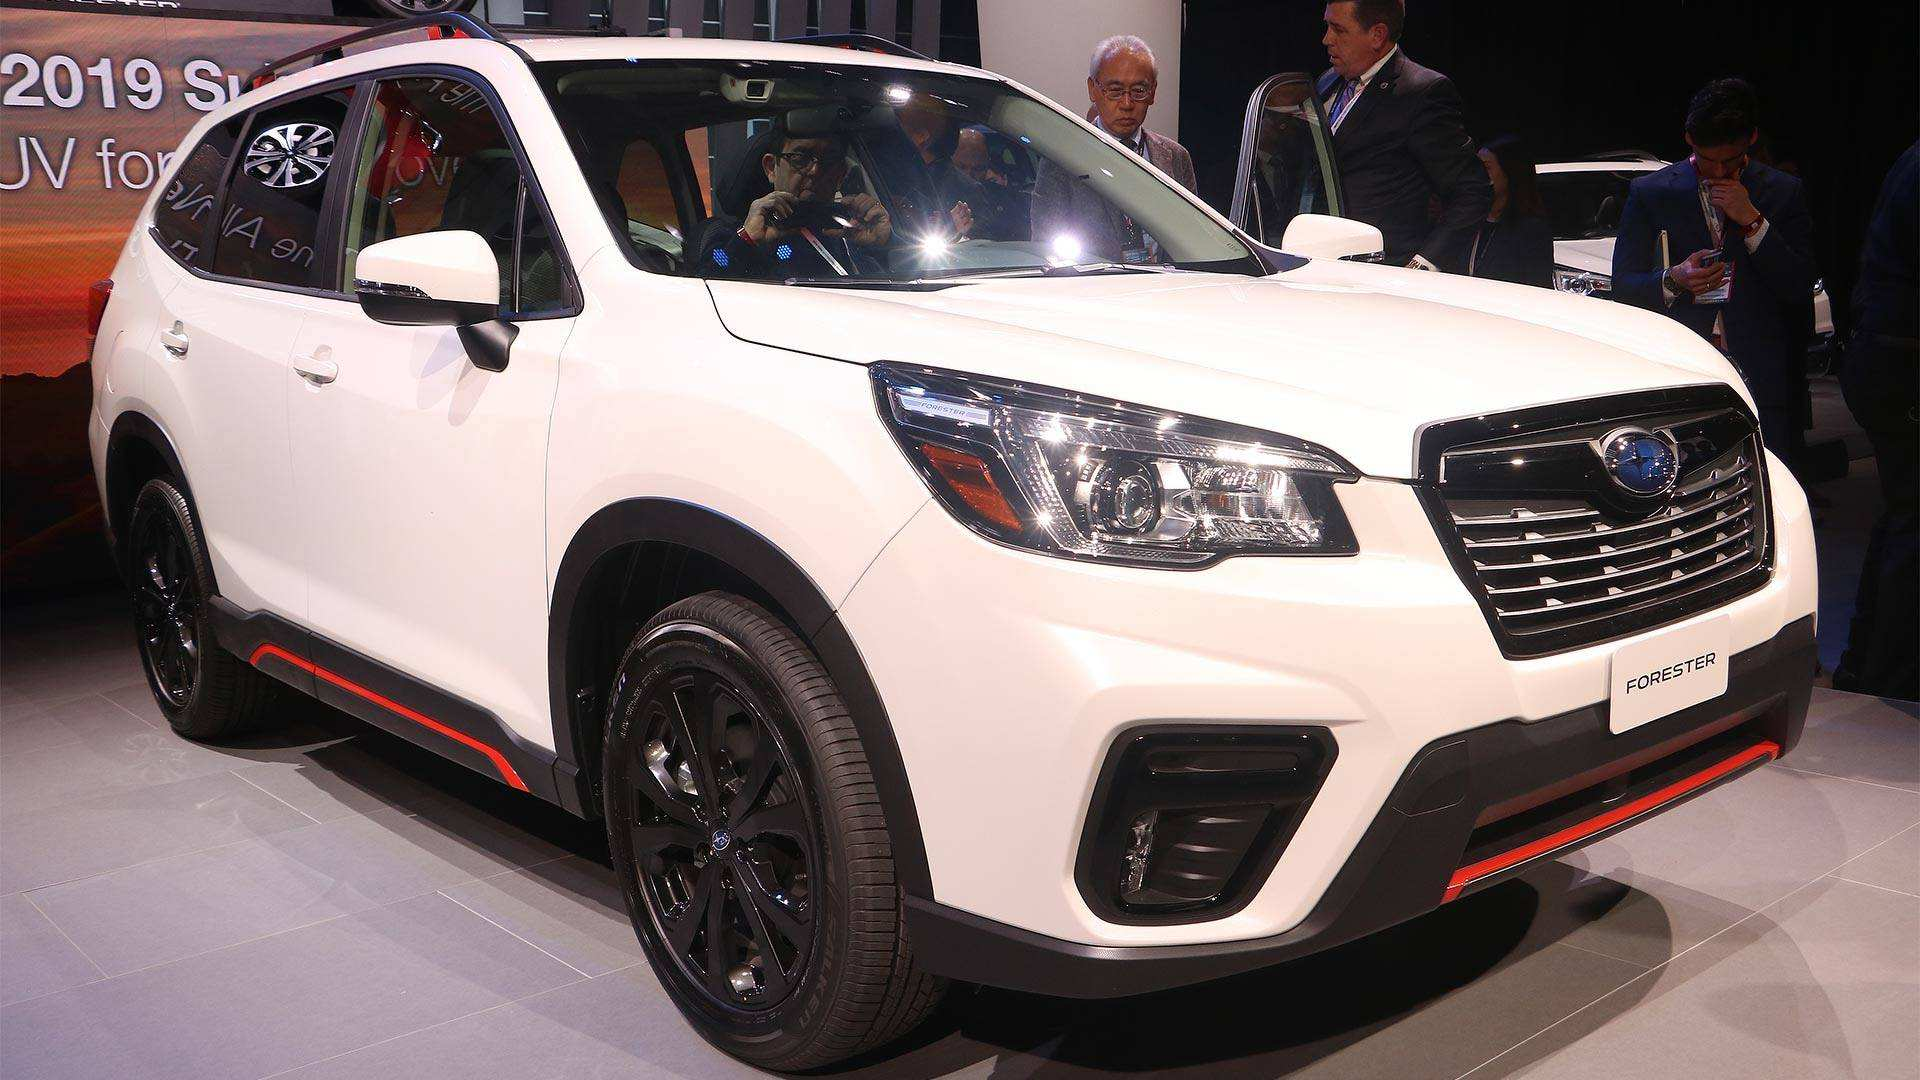 43 Great Subaru 2019 Forester Dimensions Picture Pricing with Subaru 2019 Forester Dimensions Picture